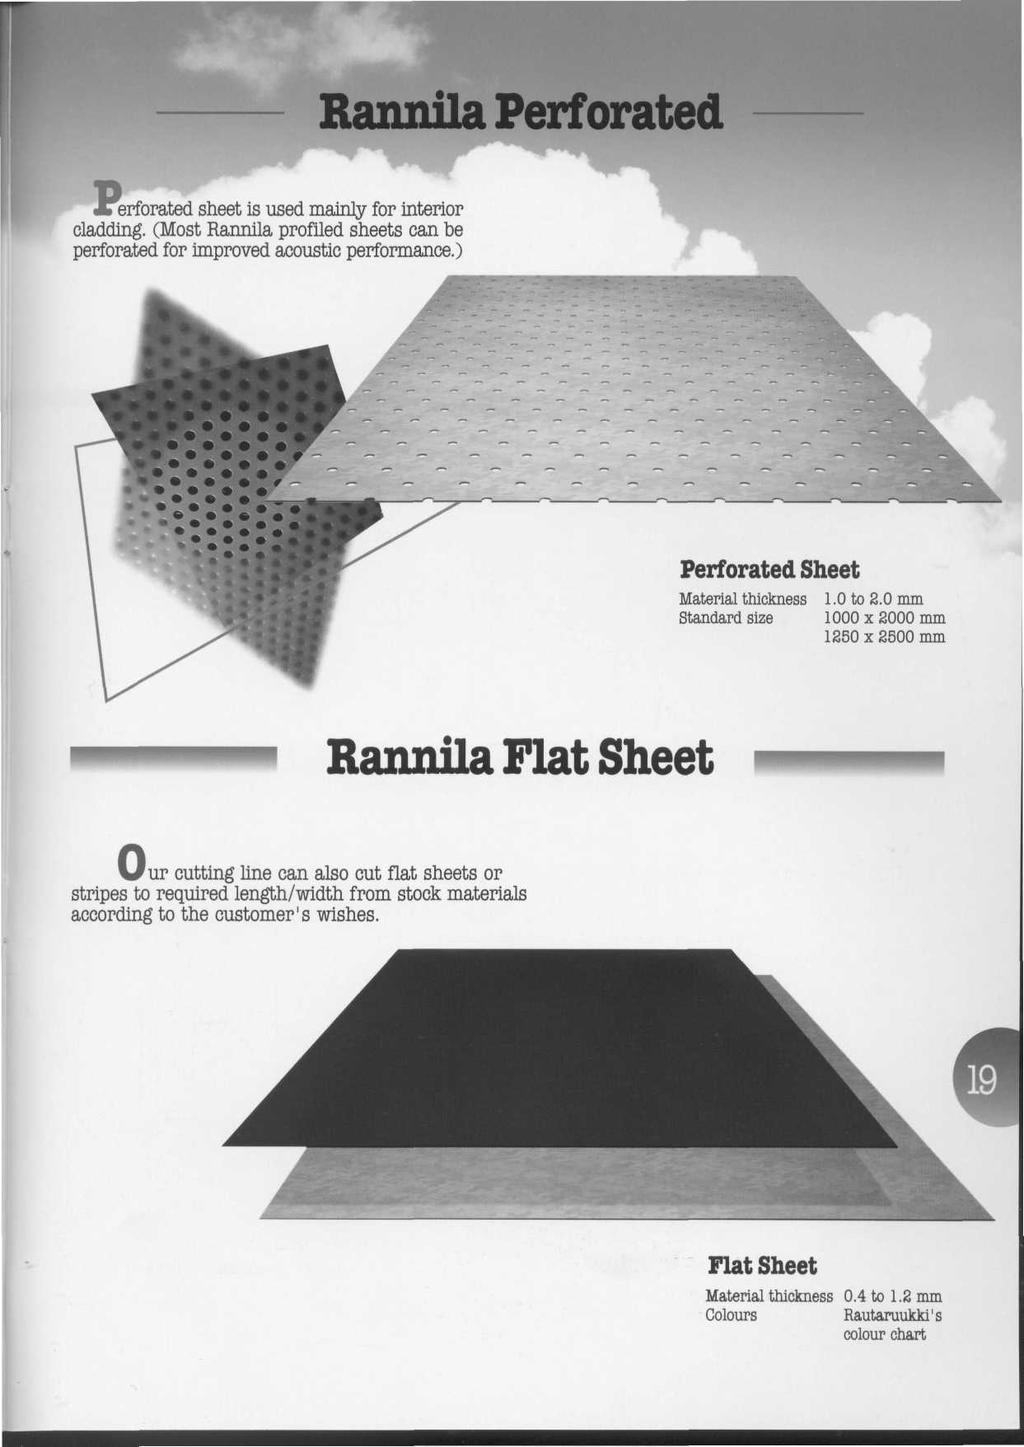 Rannila Perforated JTerforated sheet is used mainly for interior cladding. (Most Rannila profiled sheets can be perforated for improved acoustic performance.